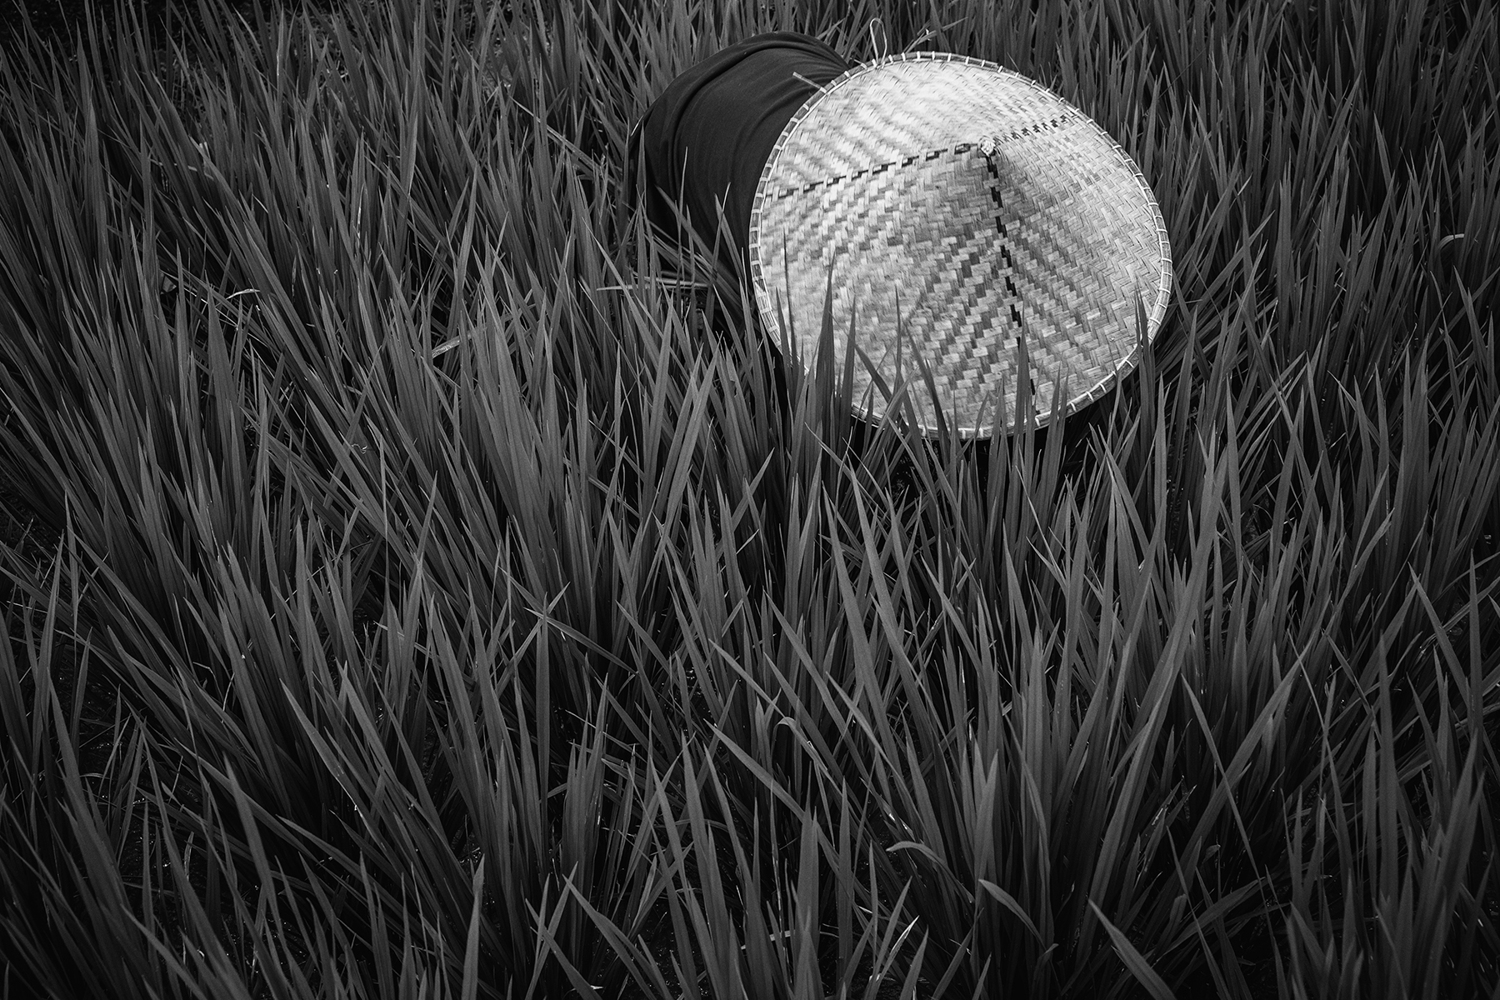 Fototapete Rice Fields In Bw